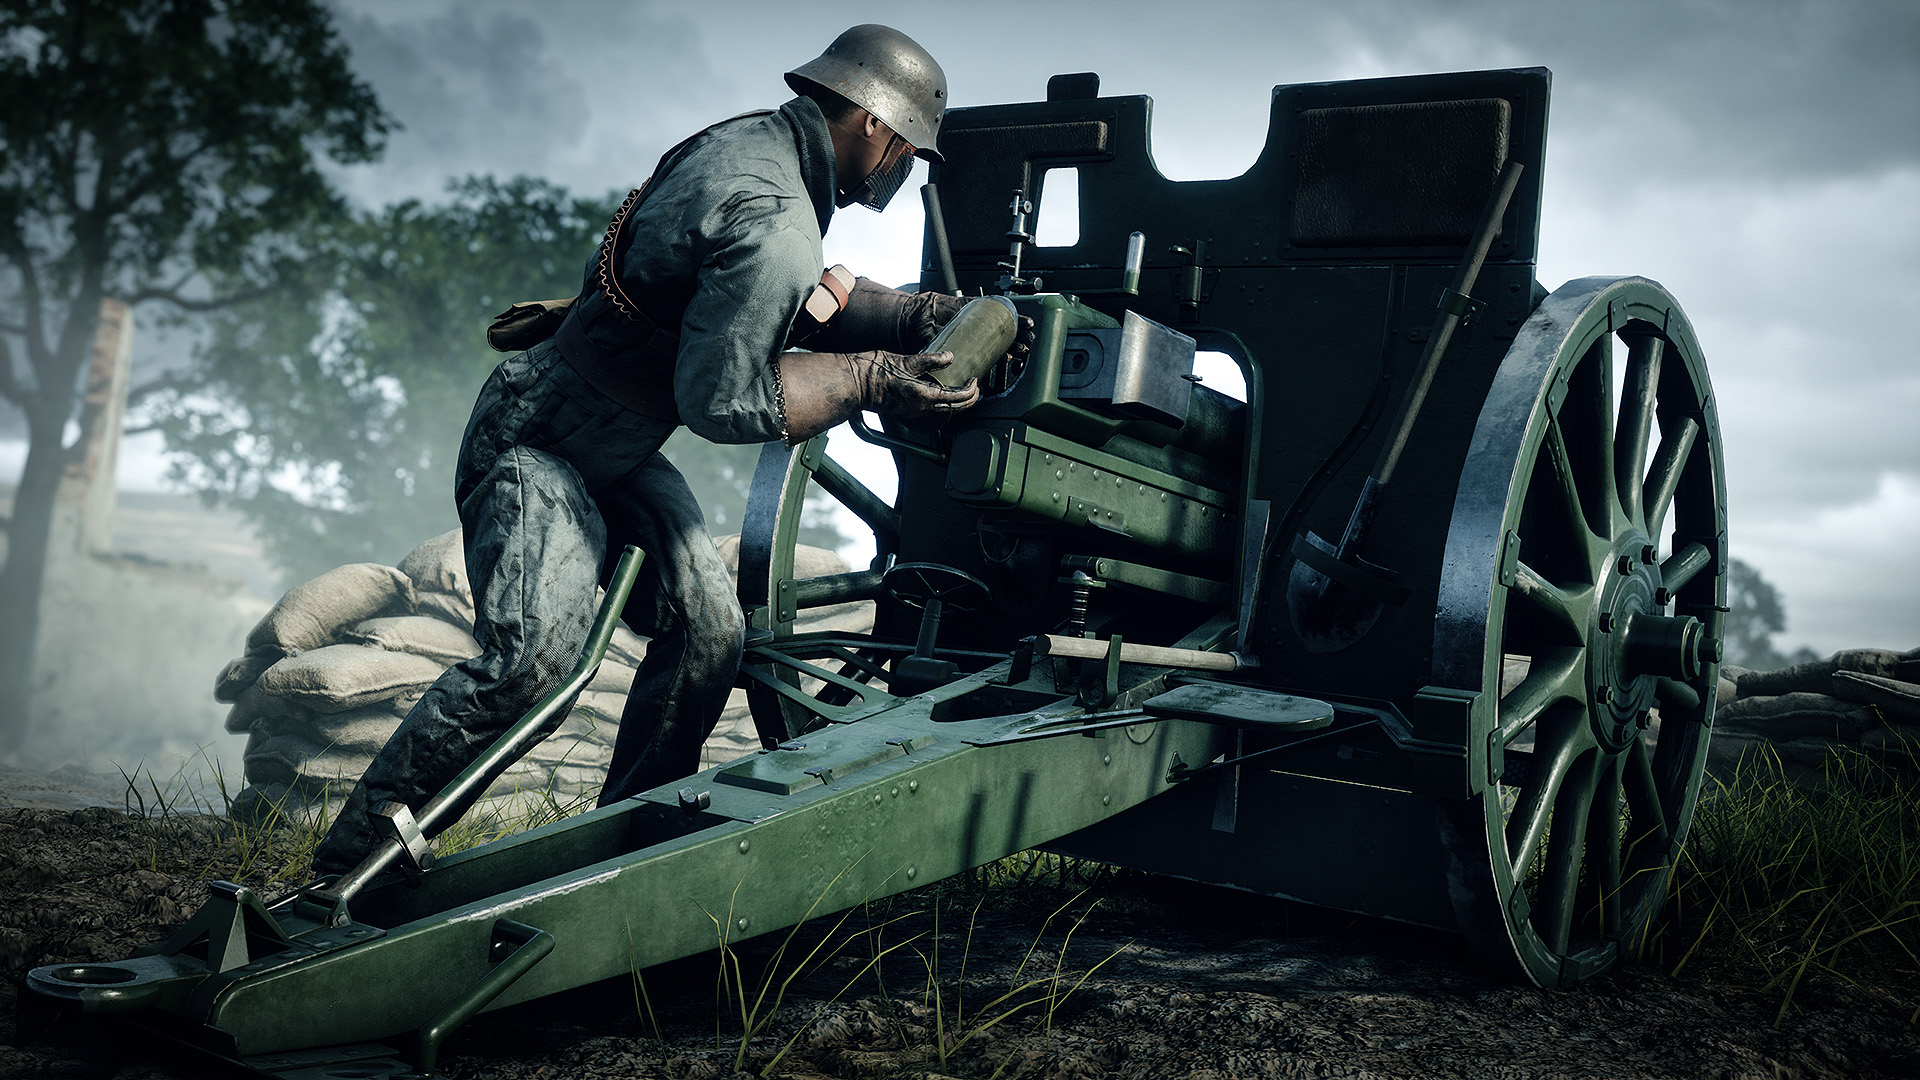 Battlefield 1 Brings History Back to Video Games